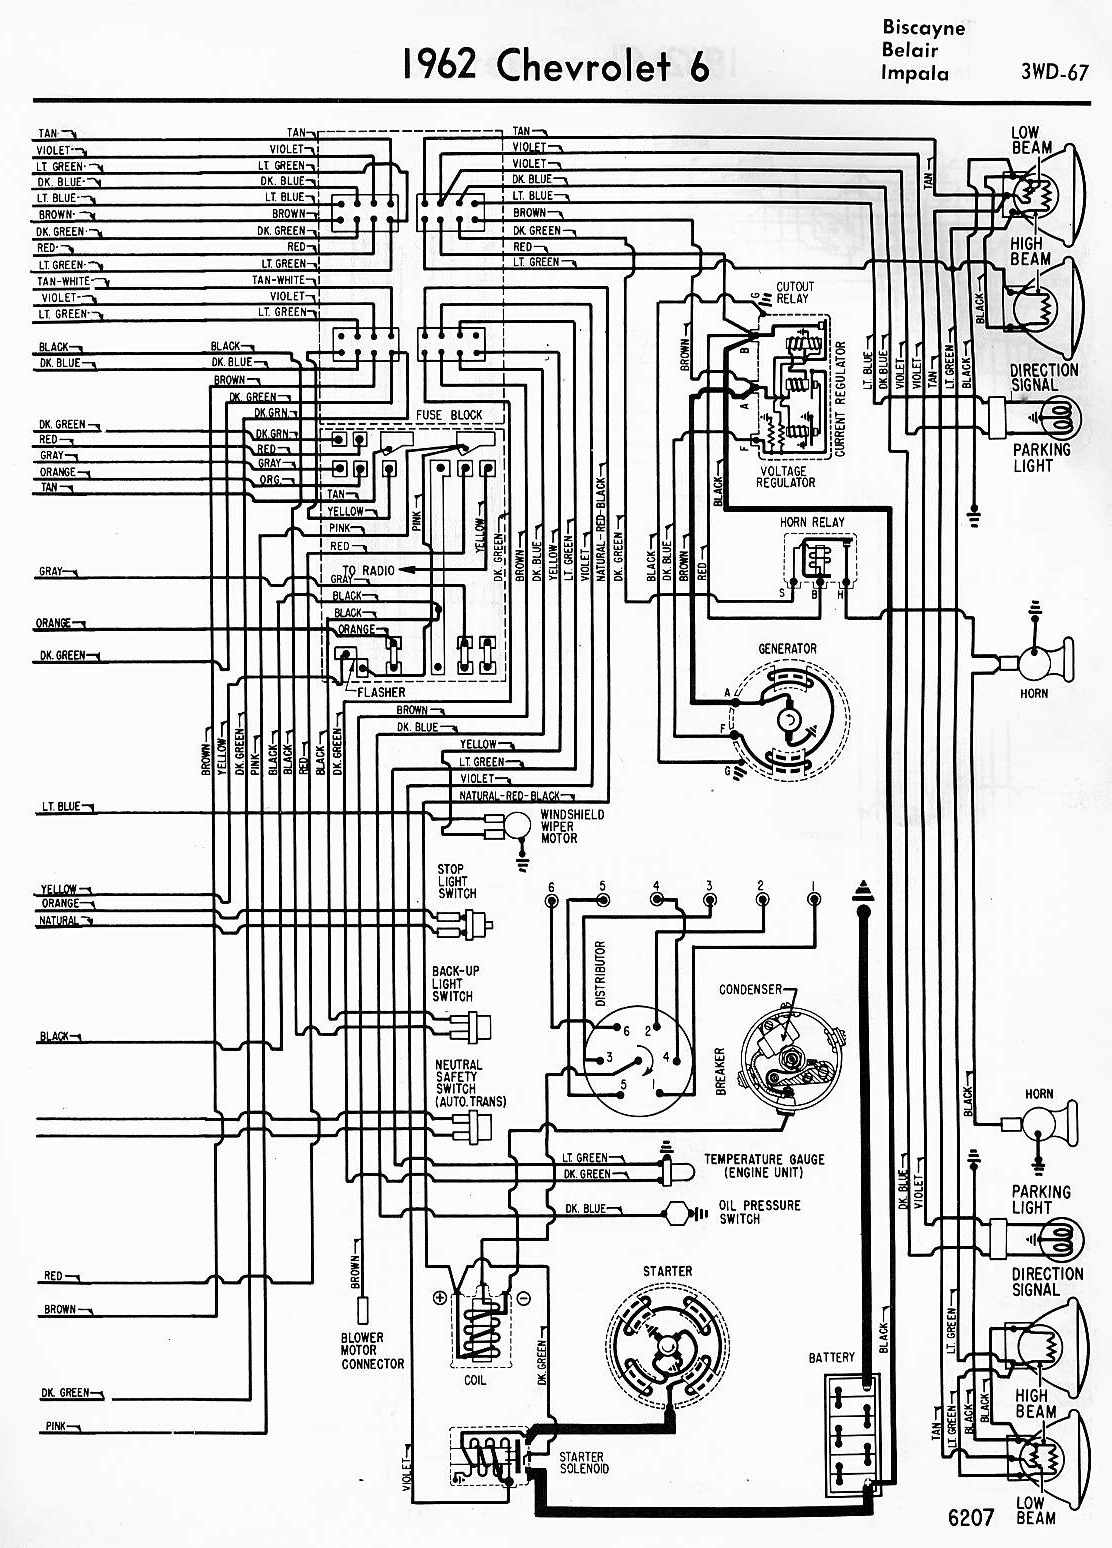 Electrical+Wiring+Diagram+Of+1964+Chevrolet+6 electrical wiring diagram of 1962 chevrolet 6 all about wiring 1963 impala wiper motor wiring diagram at eliteediting.co